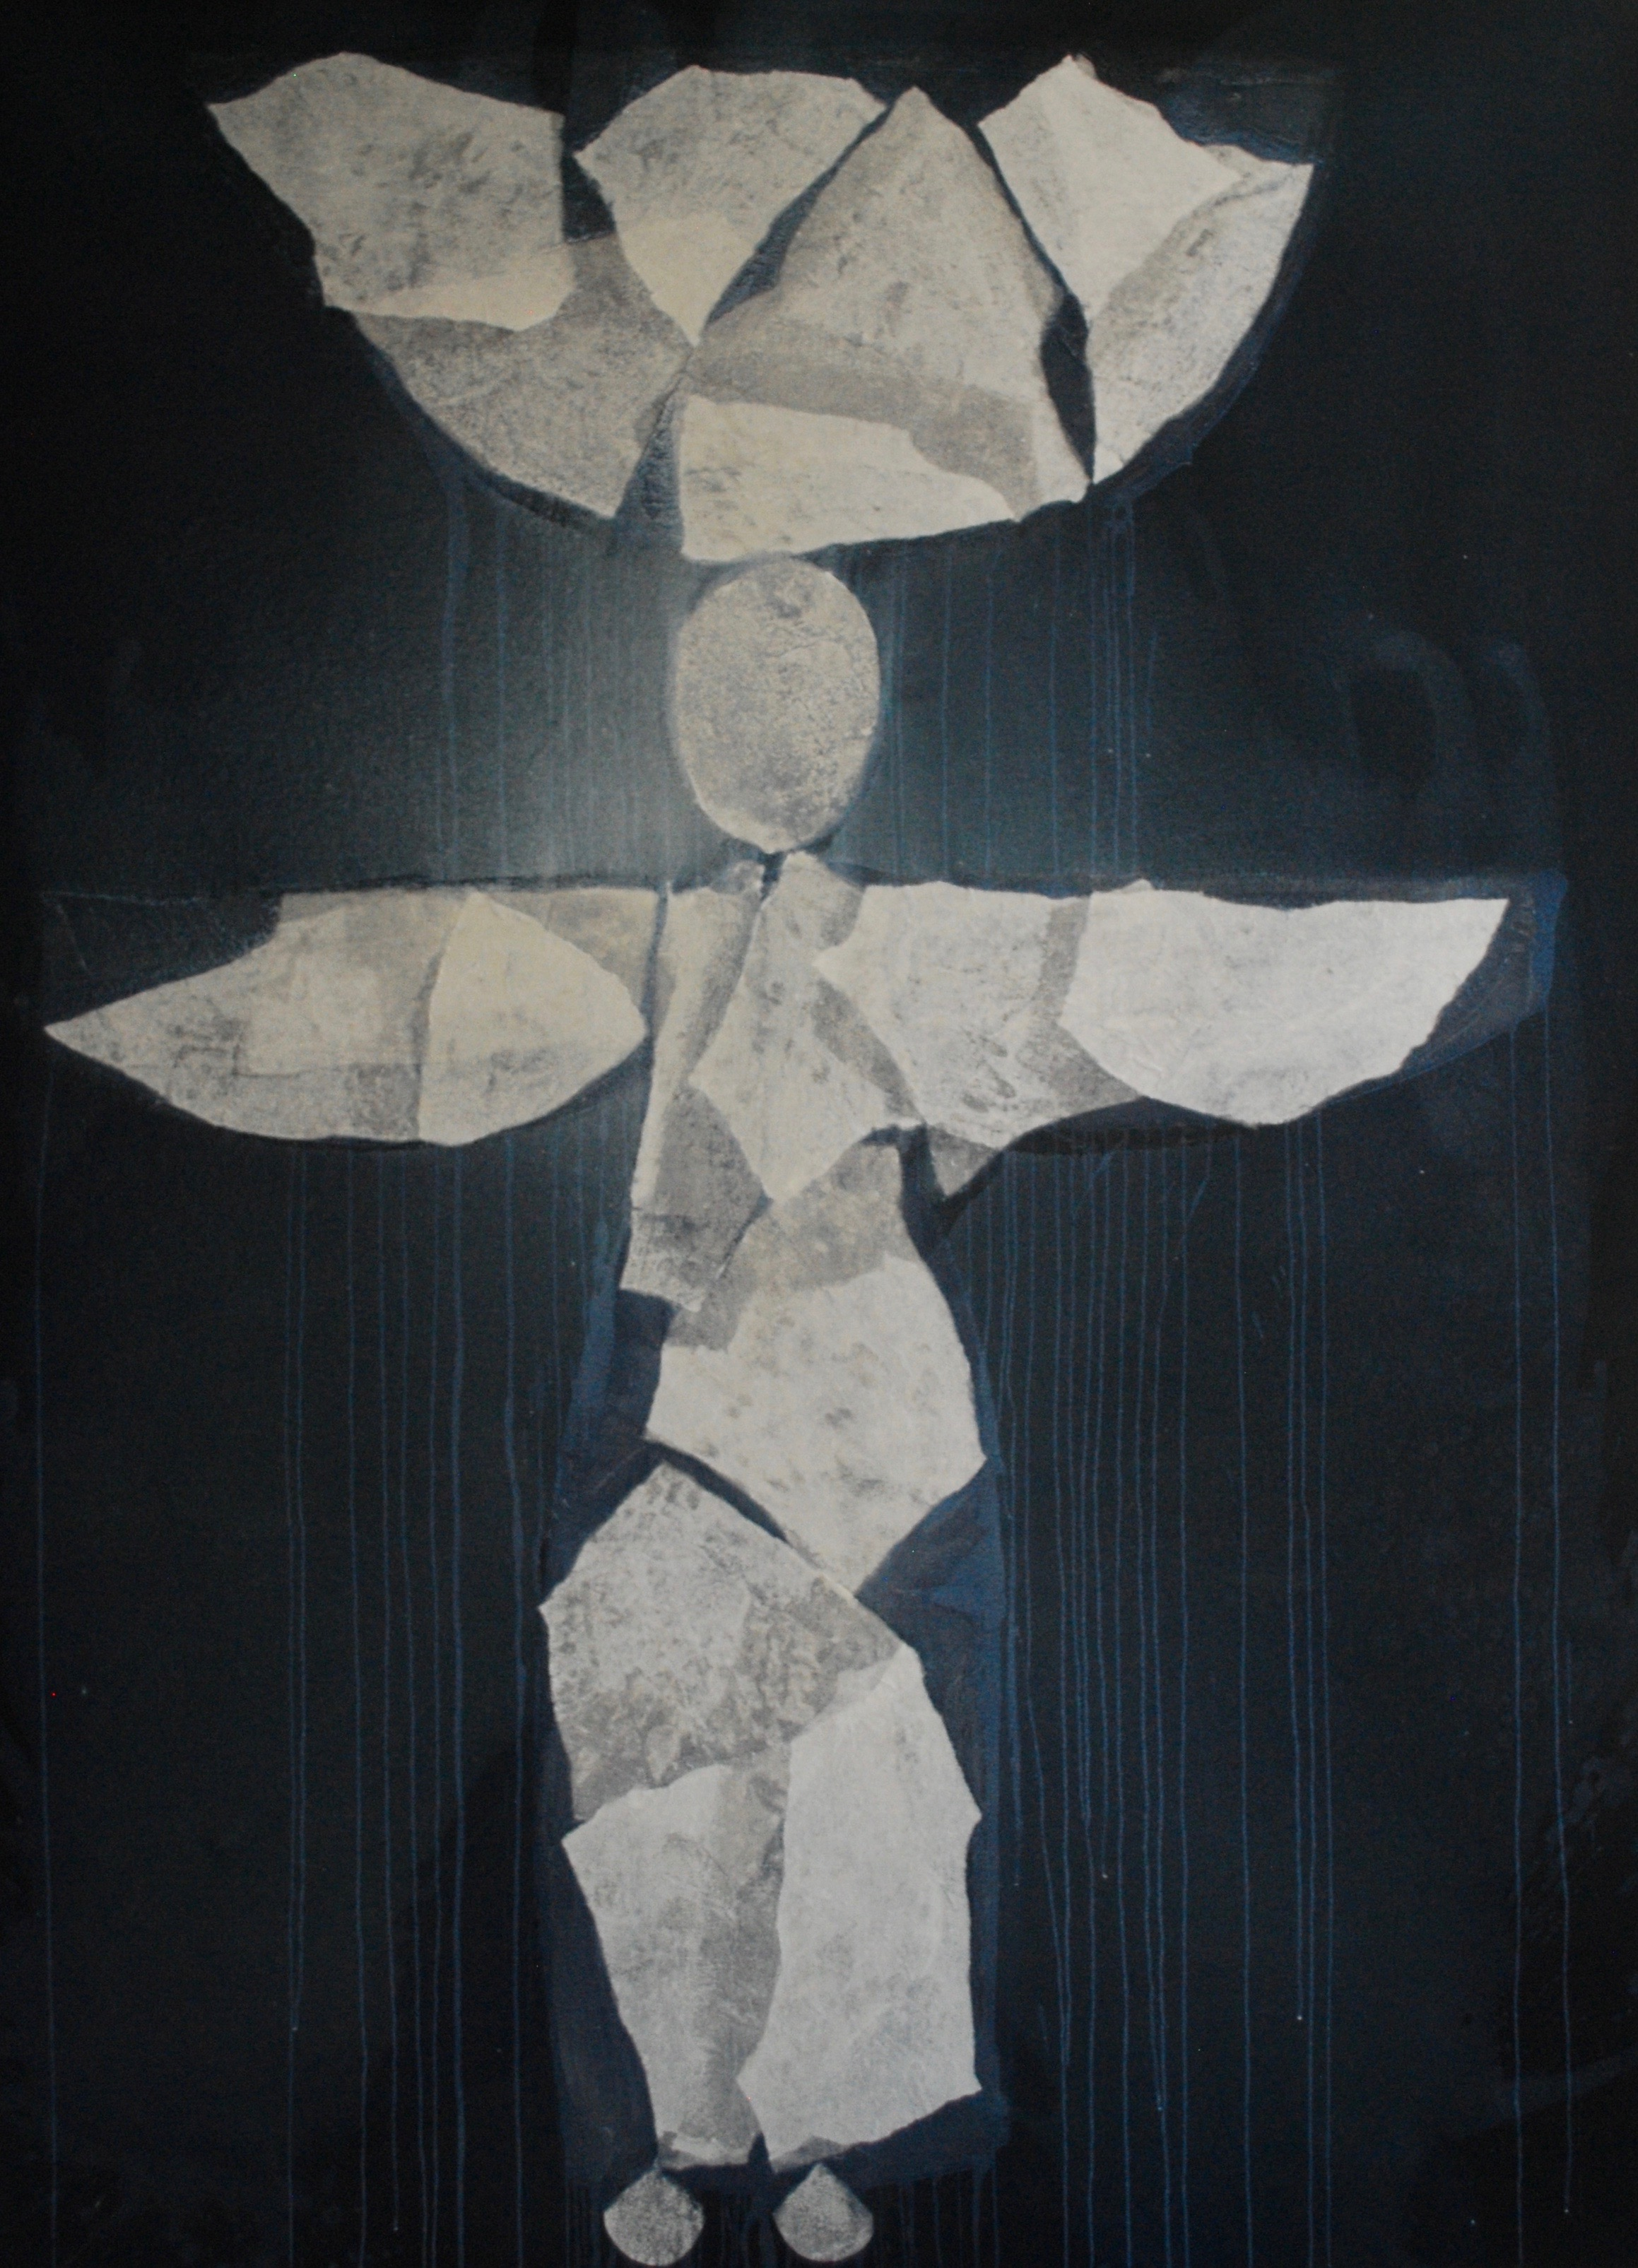 SoHyun Bae, Wrapped Shards: Egg Woman VII, 2003, rice-paper and pure pigment on canvas, 81 x 60 inches